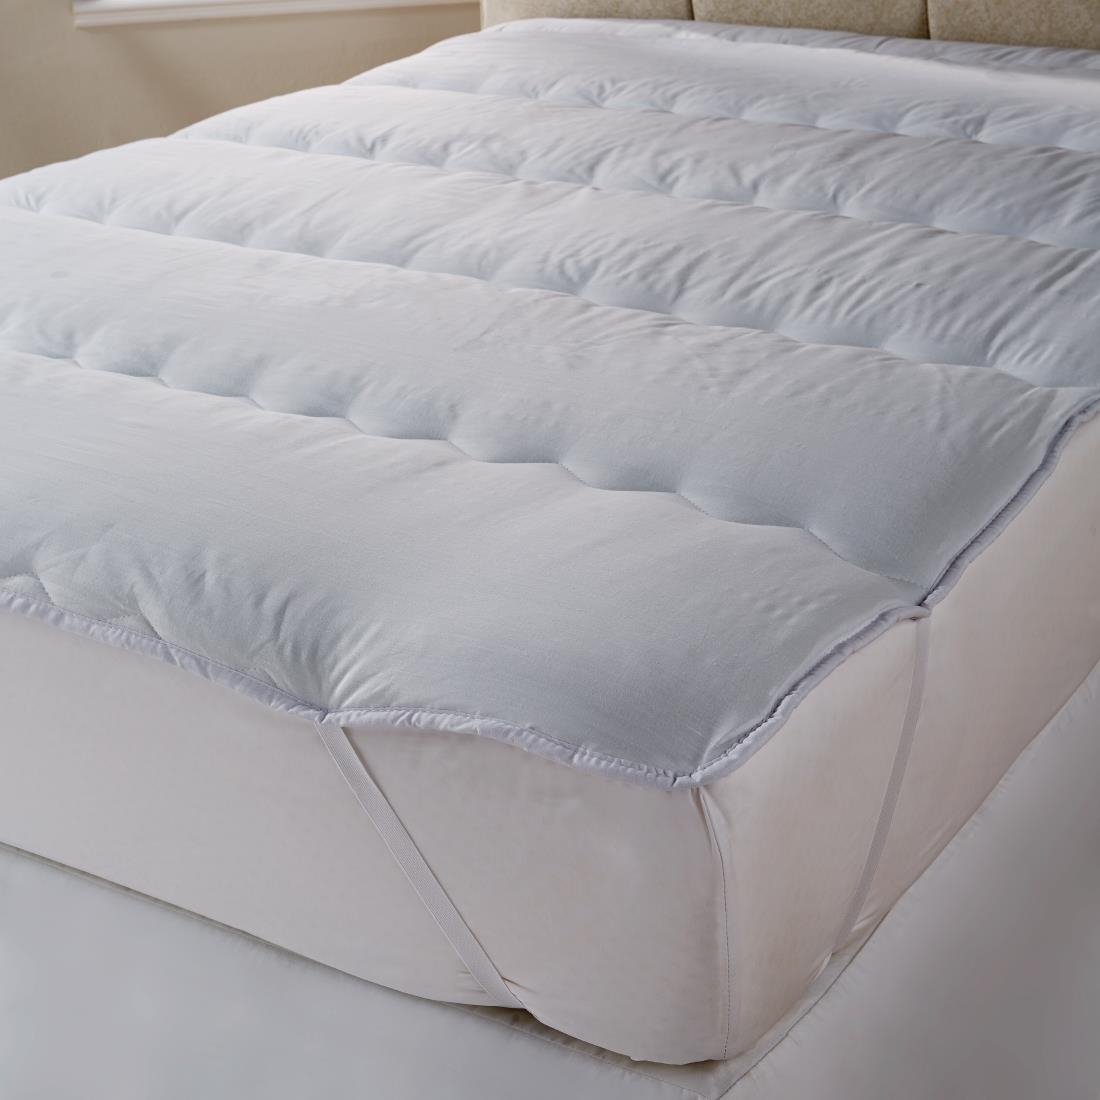 Image of Mitre Comfort Mattress Topper European Double